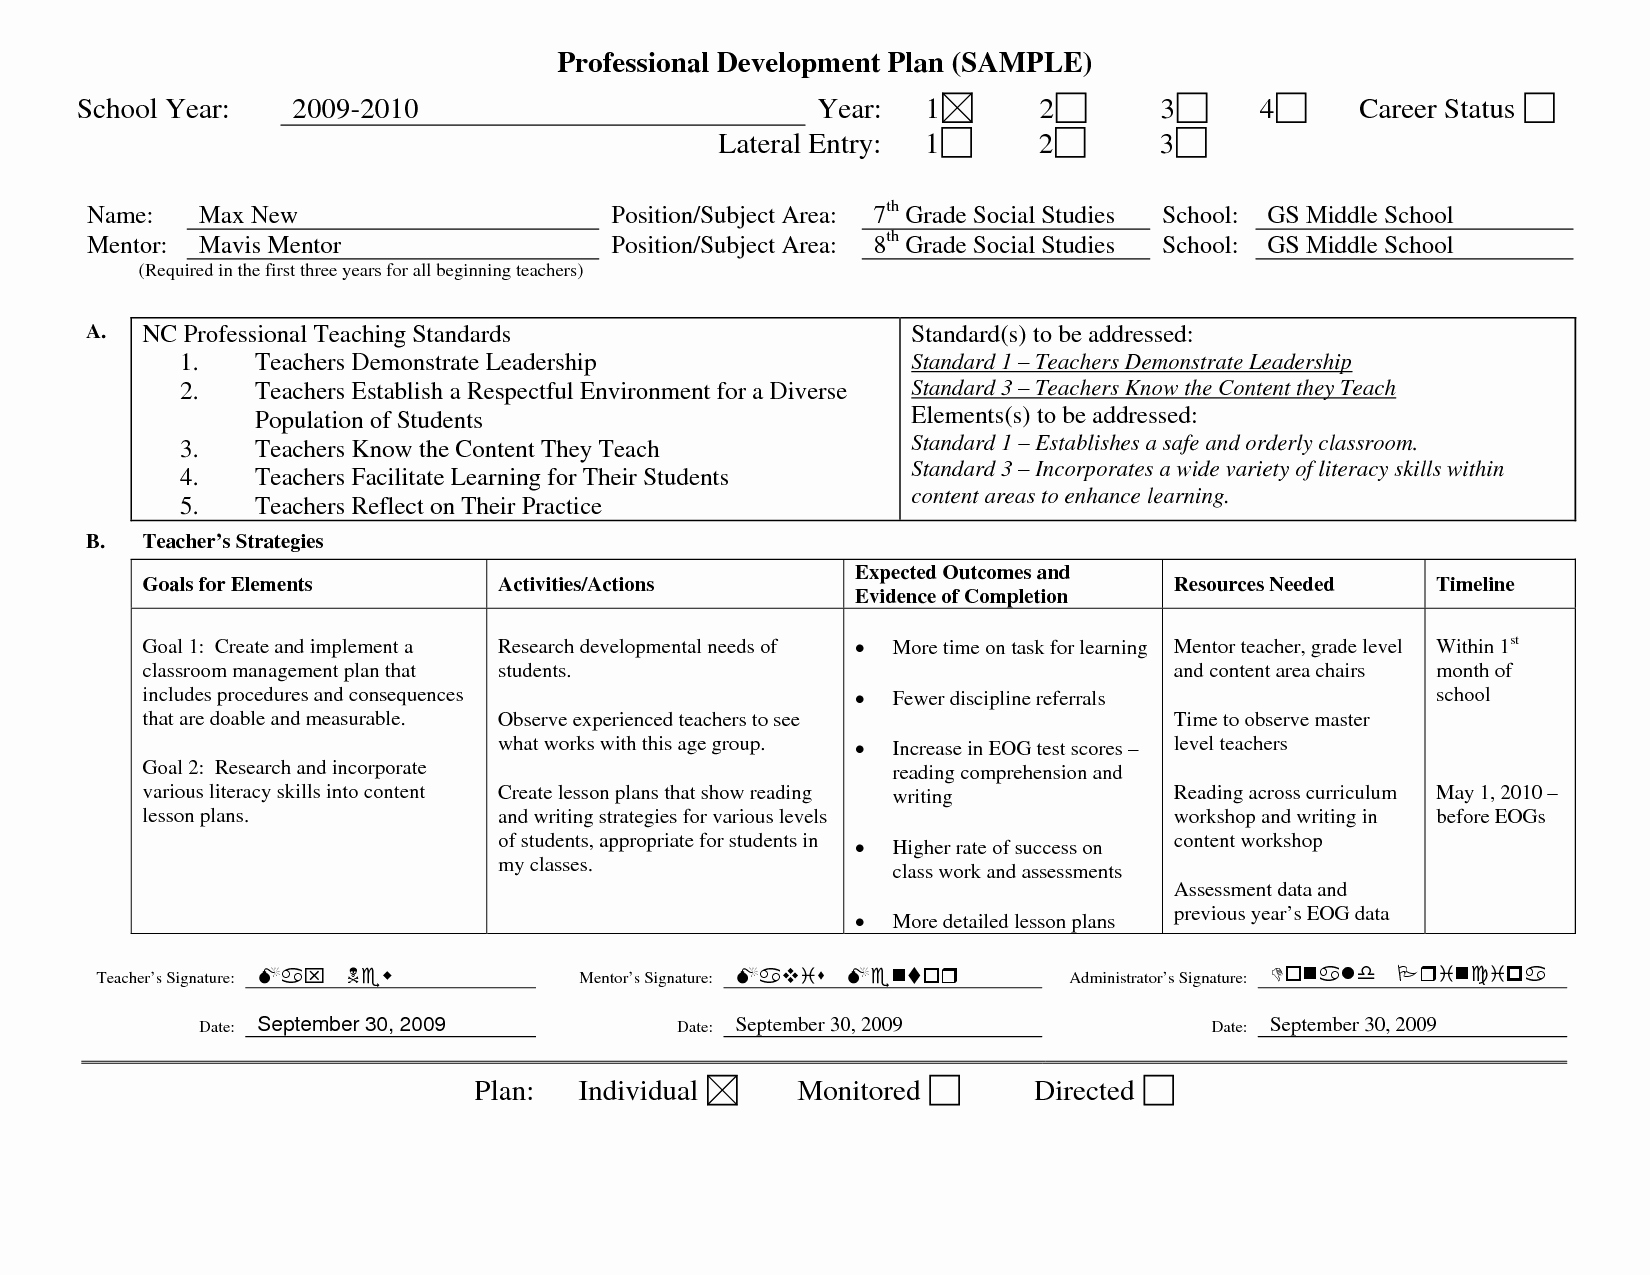 Professional Growth Plan Template Fresh Professional Learning Plan Examples Google Search